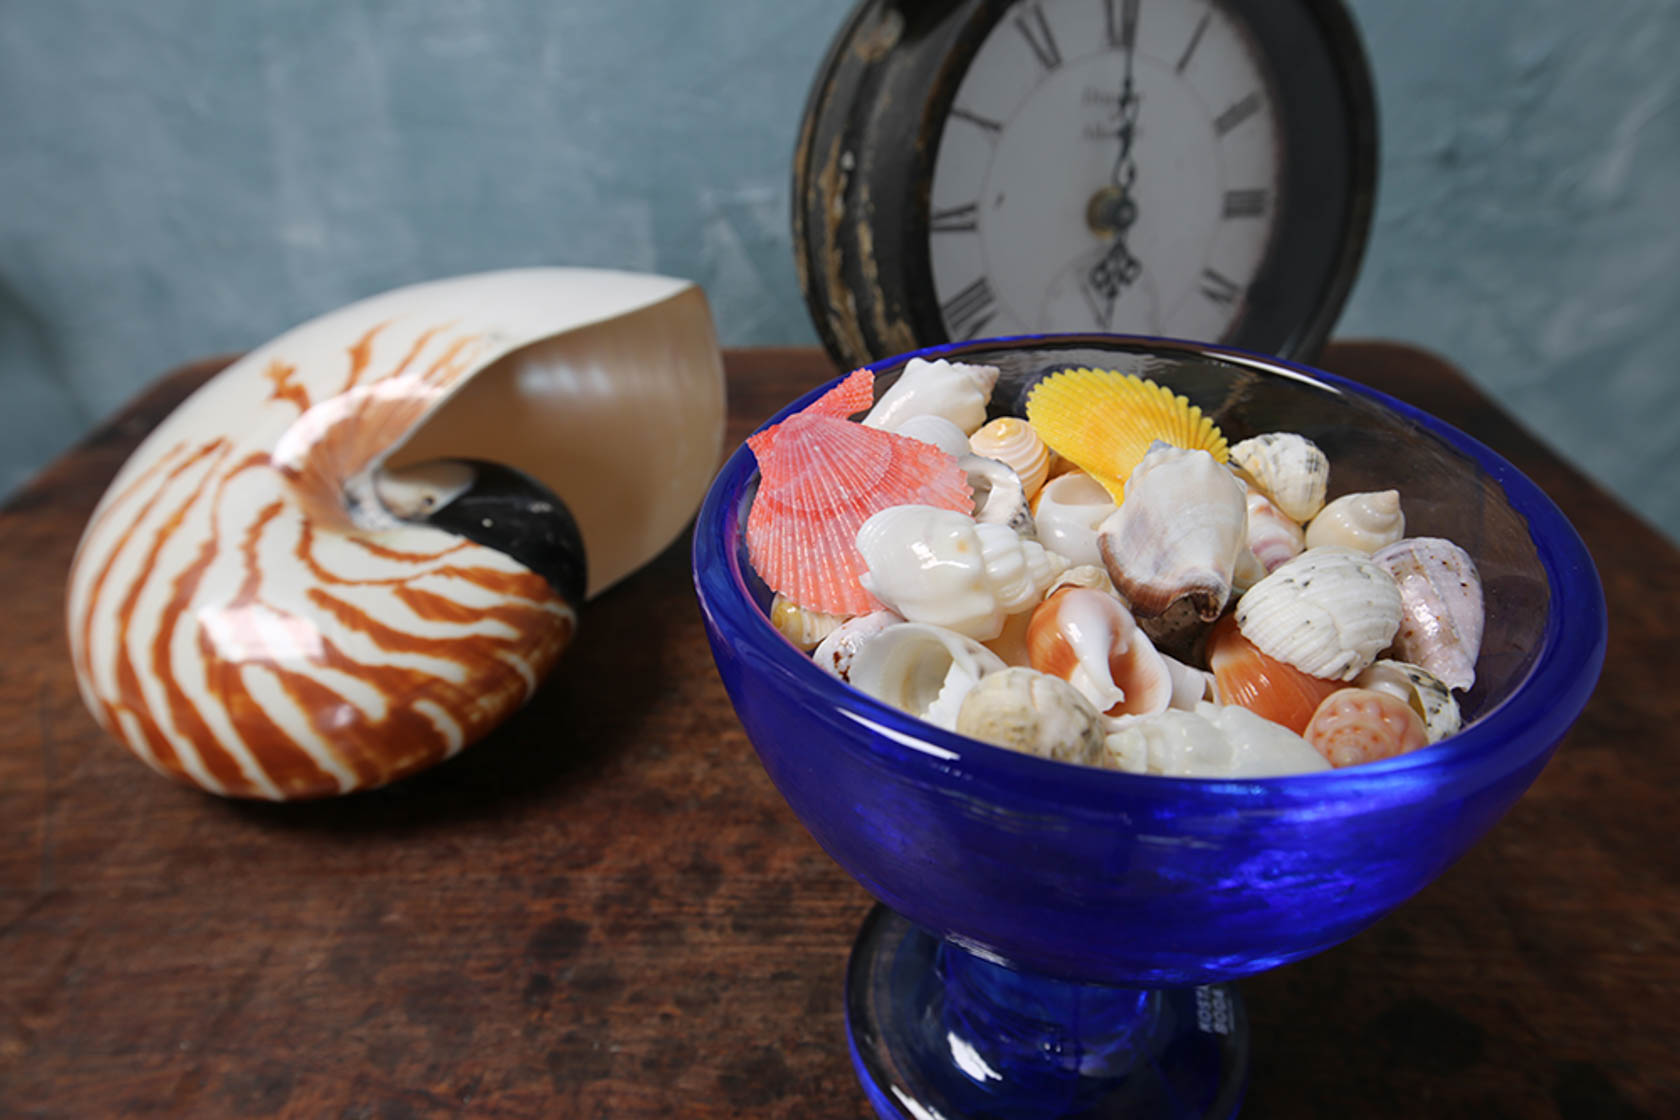 Image of shells in a bowl and a clock taken with the Canon EF 11-24mm f4L USM wide zoom lens